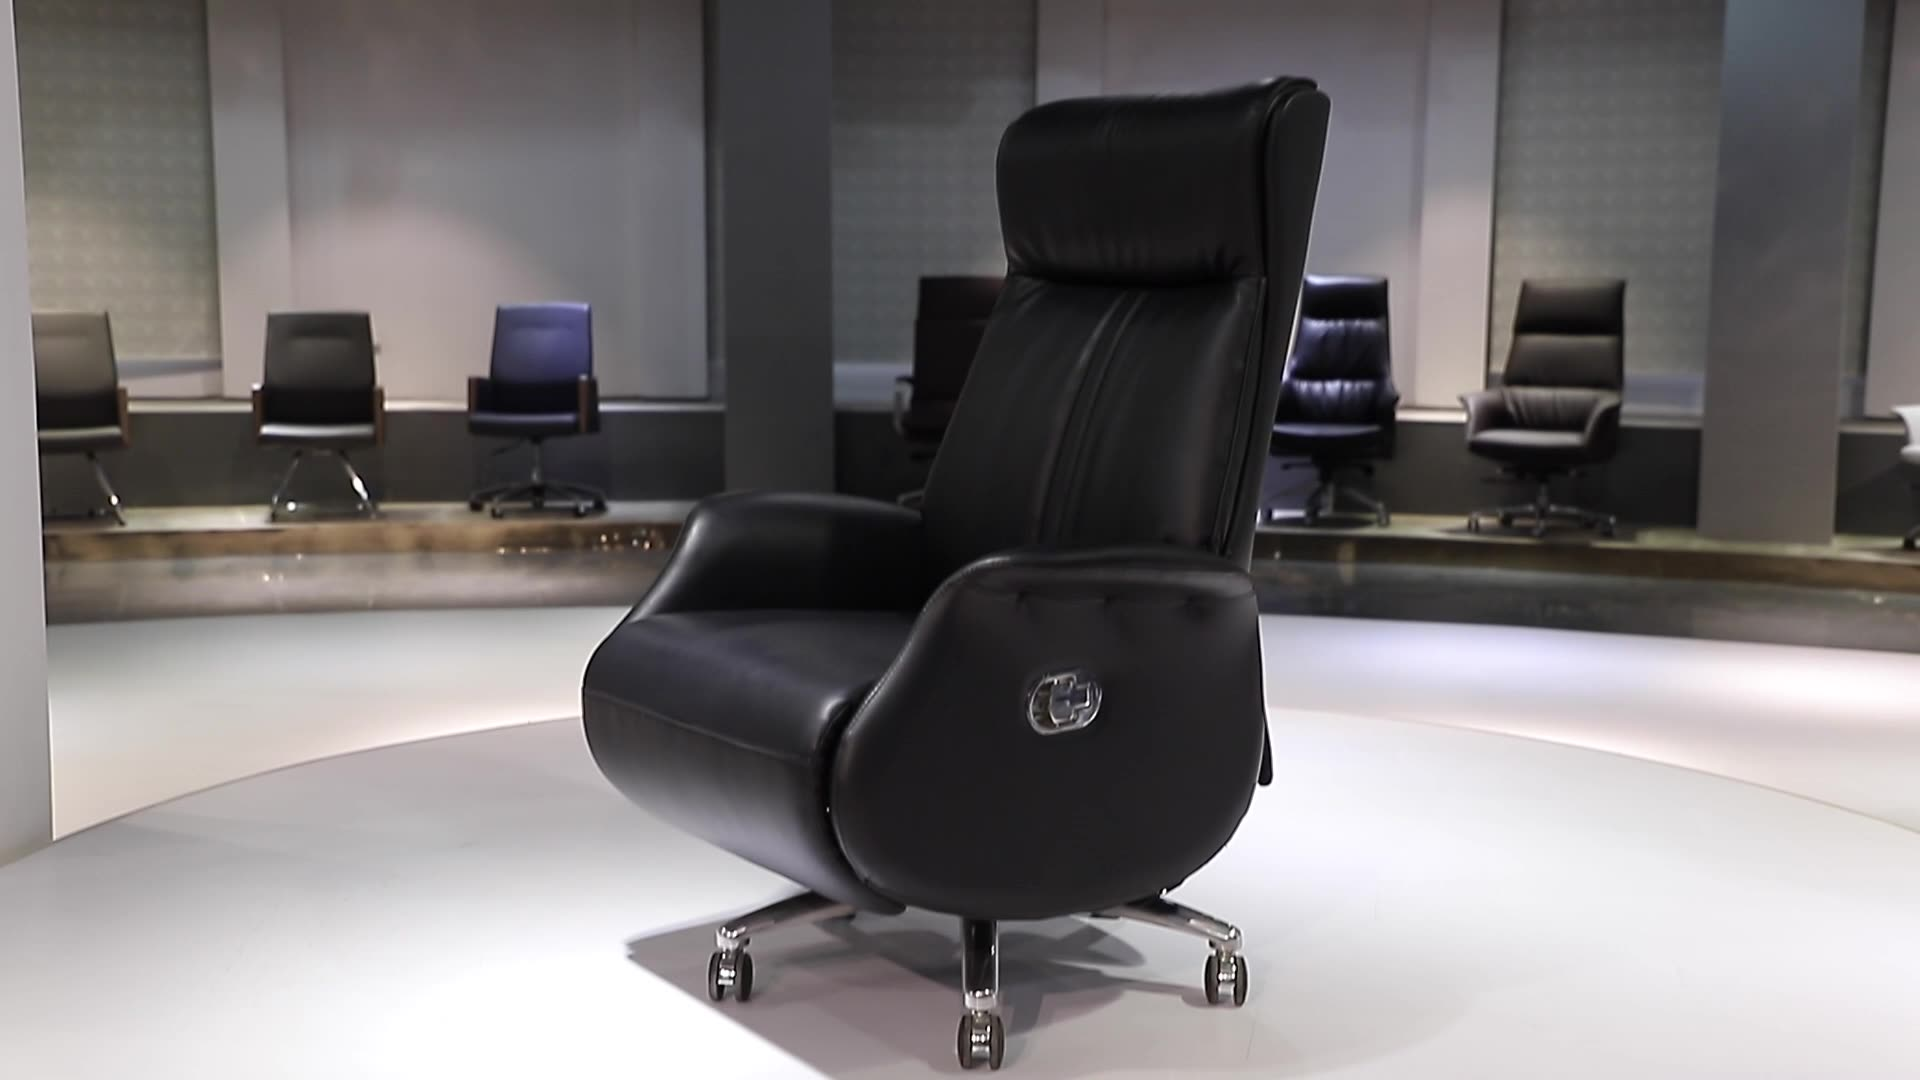 Comfortable Home Furniture PC Office Swivel chair speicification with headrest and footrest